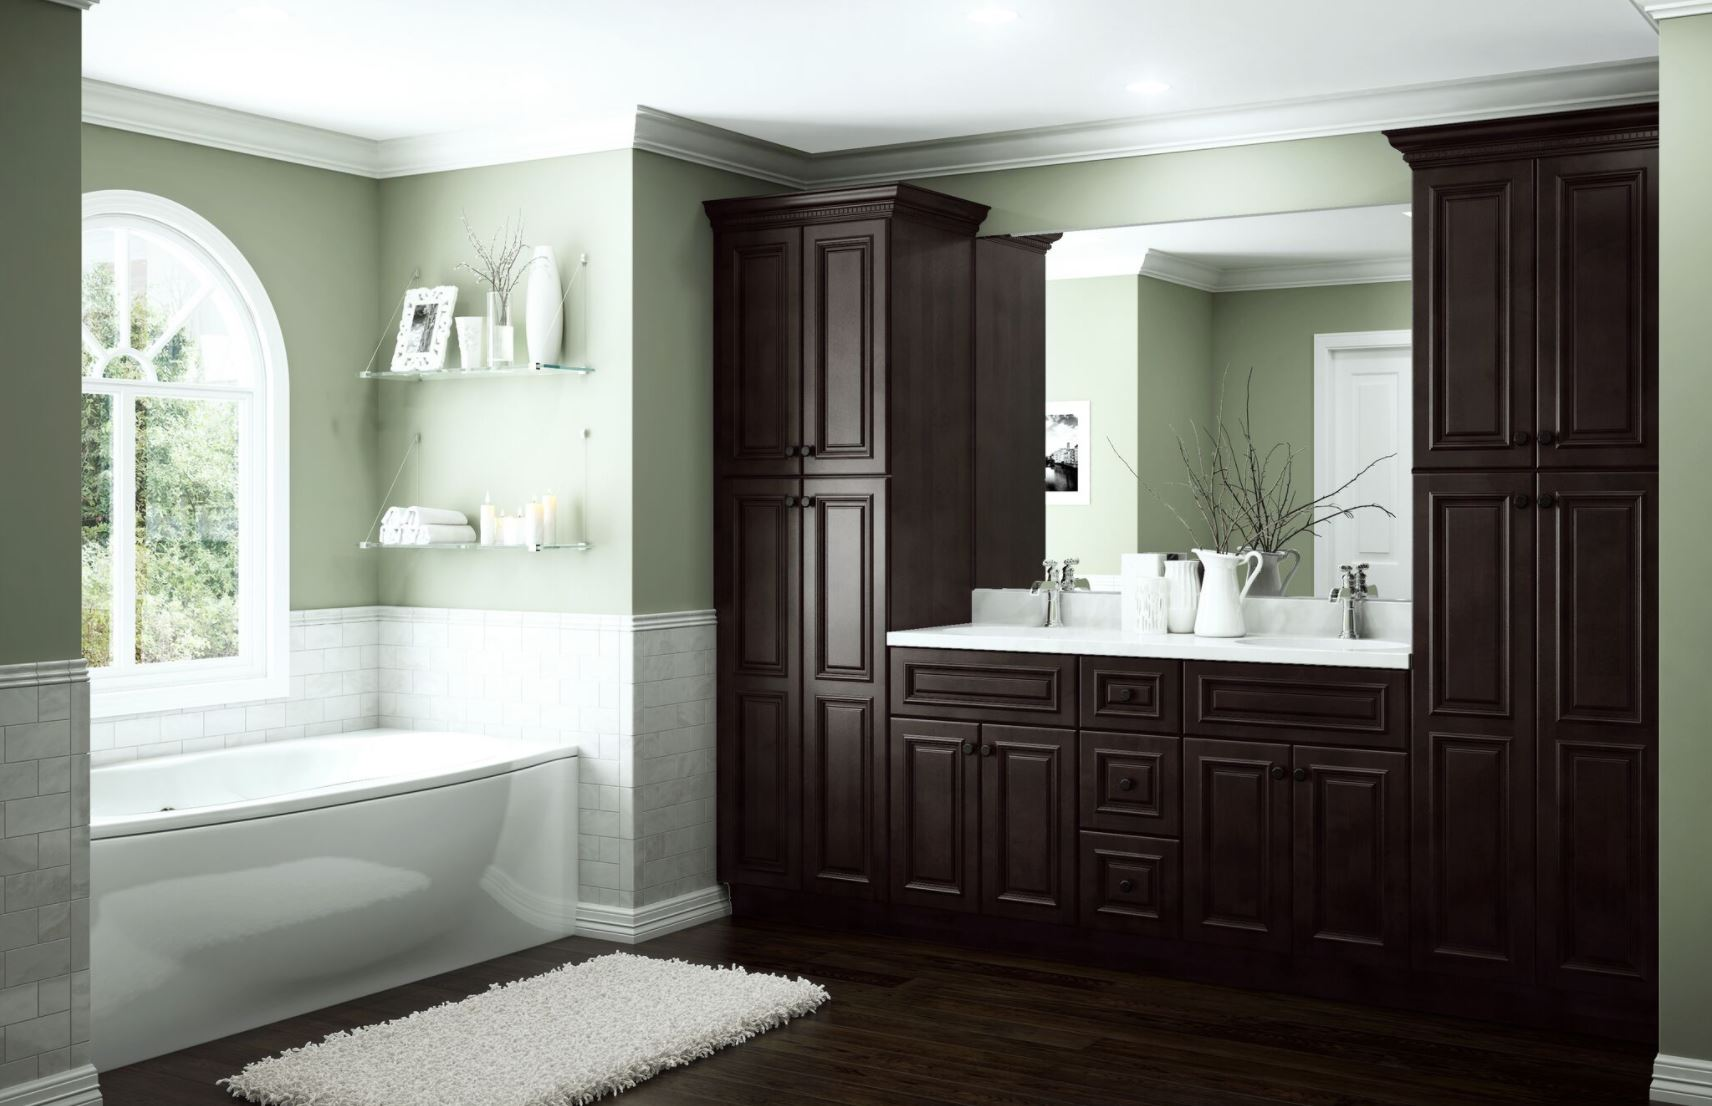 Home Decorators Vanities: Somerset Base Cabinets In Manganite